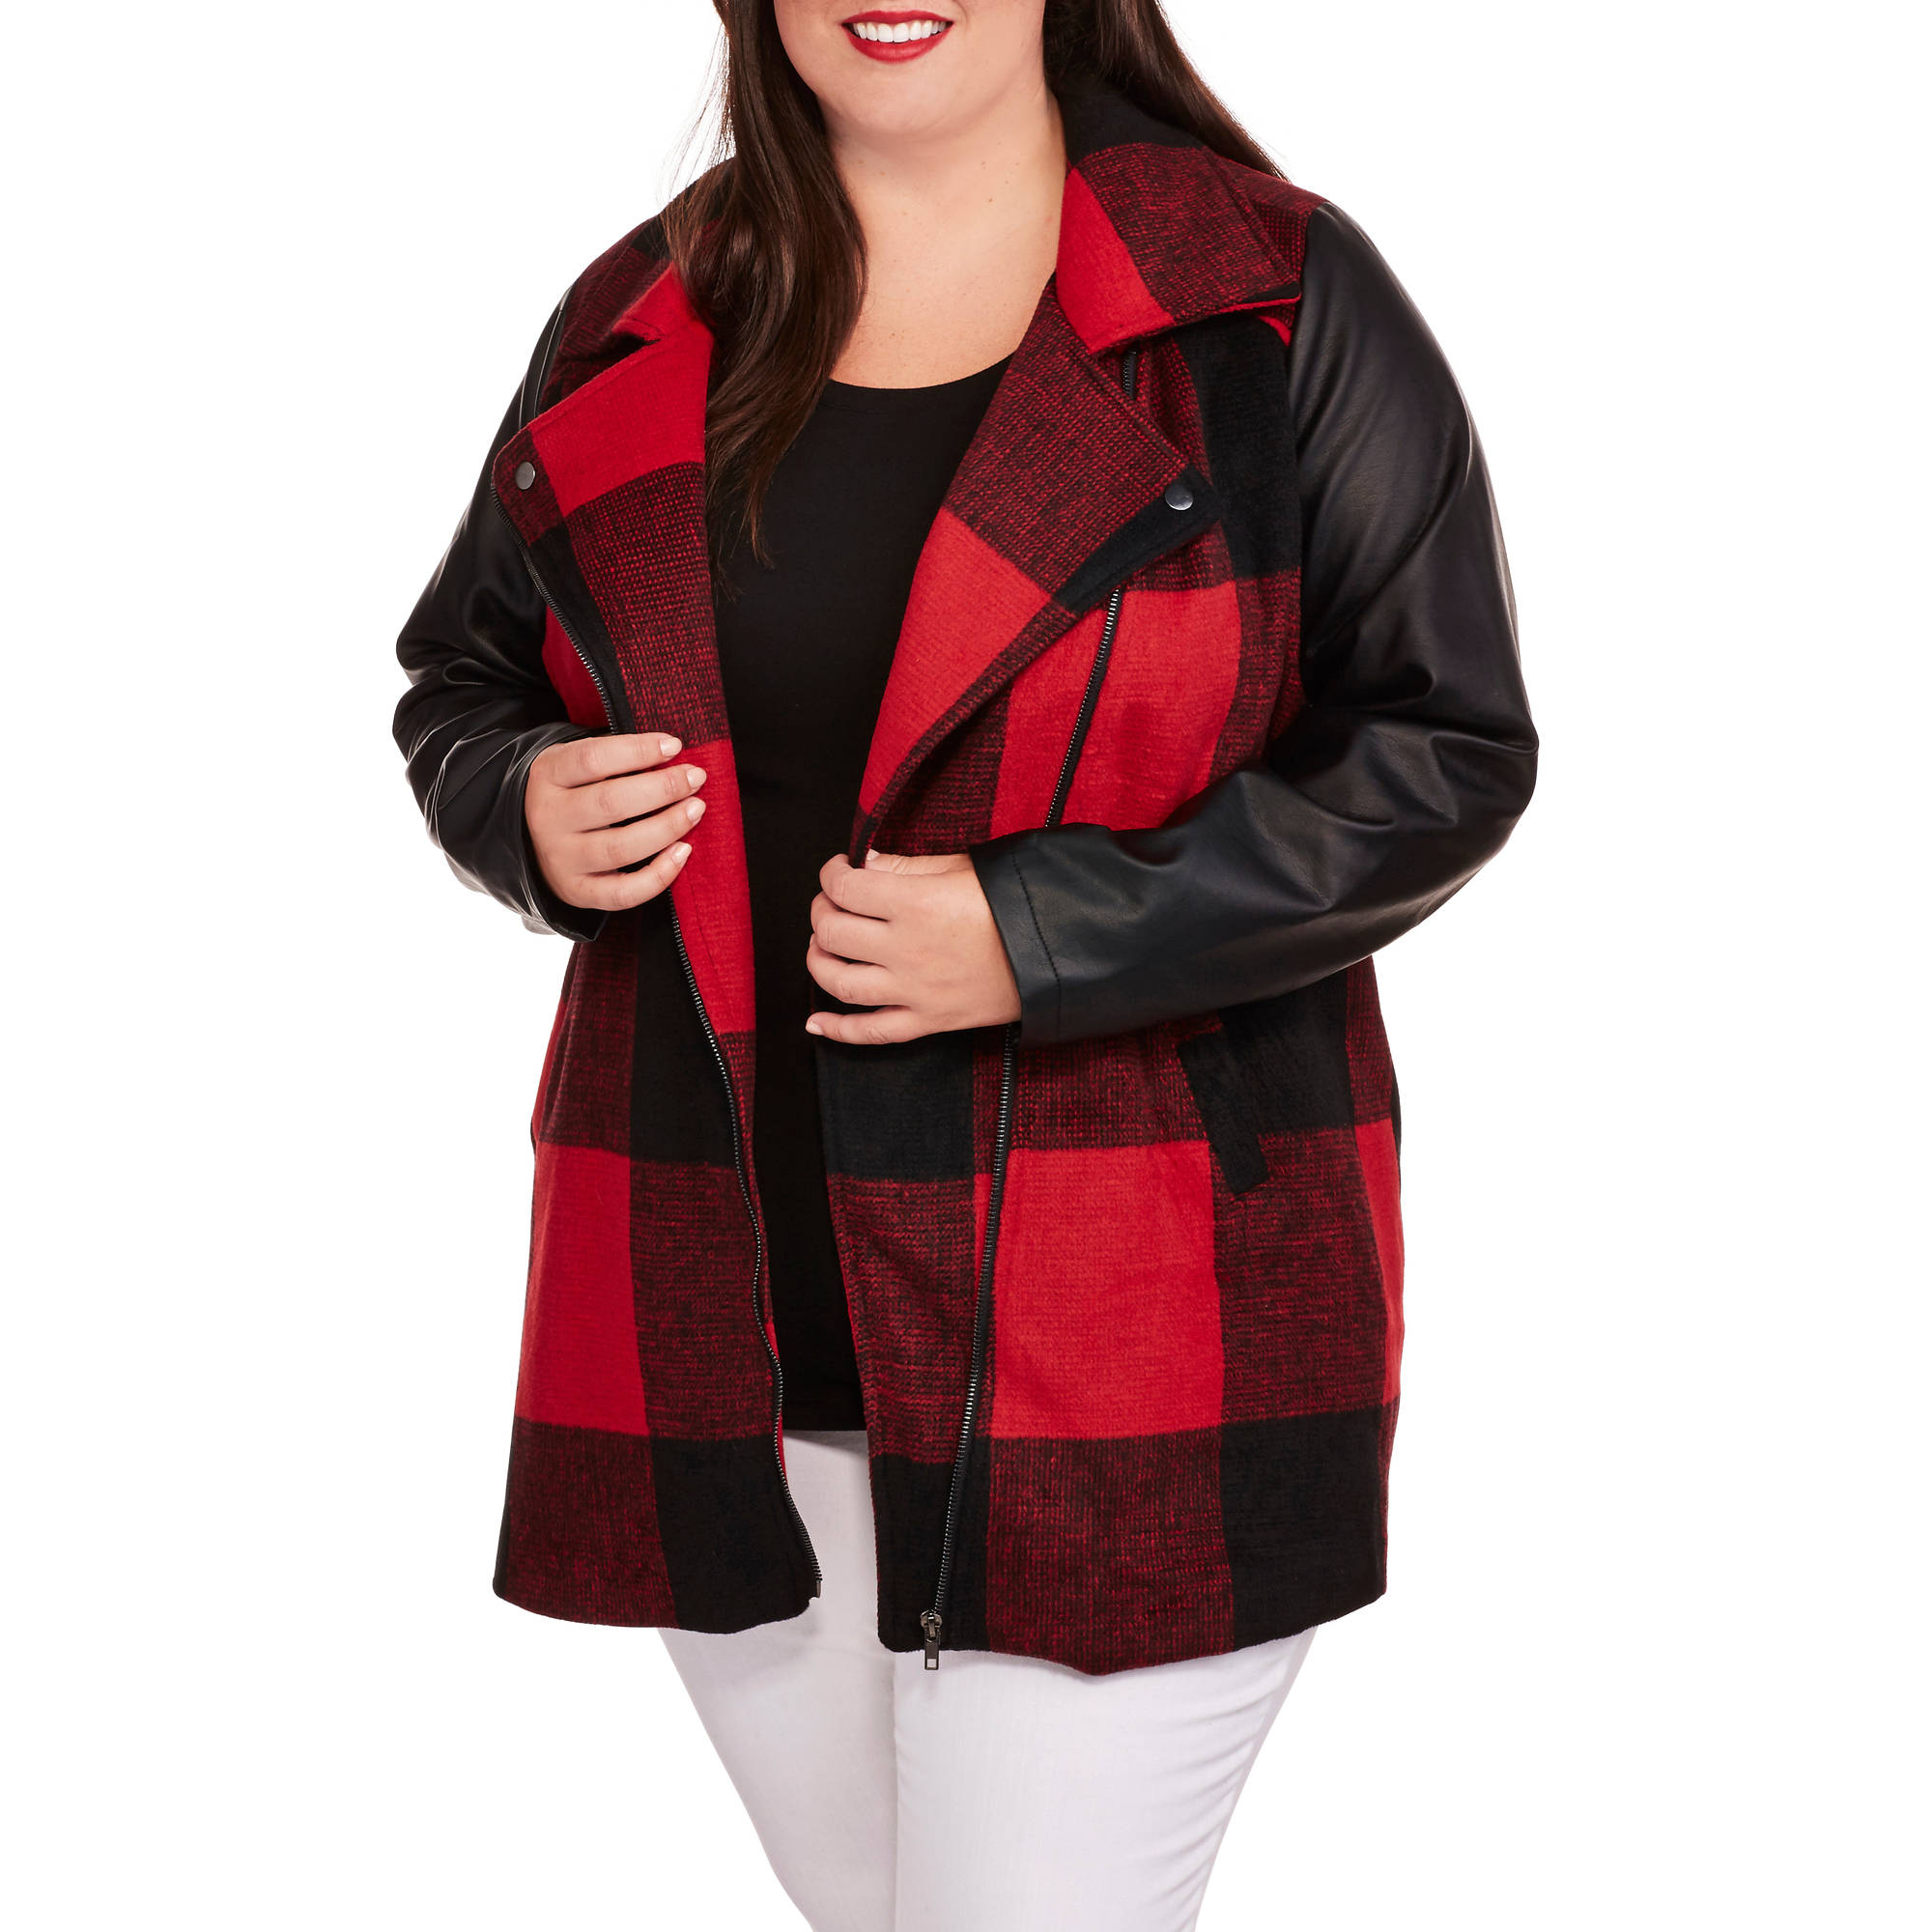 Maxwell Studio Women's Plus-Size Buffalo Plaid Faux Wool Coat with Faux Leather Sleeves